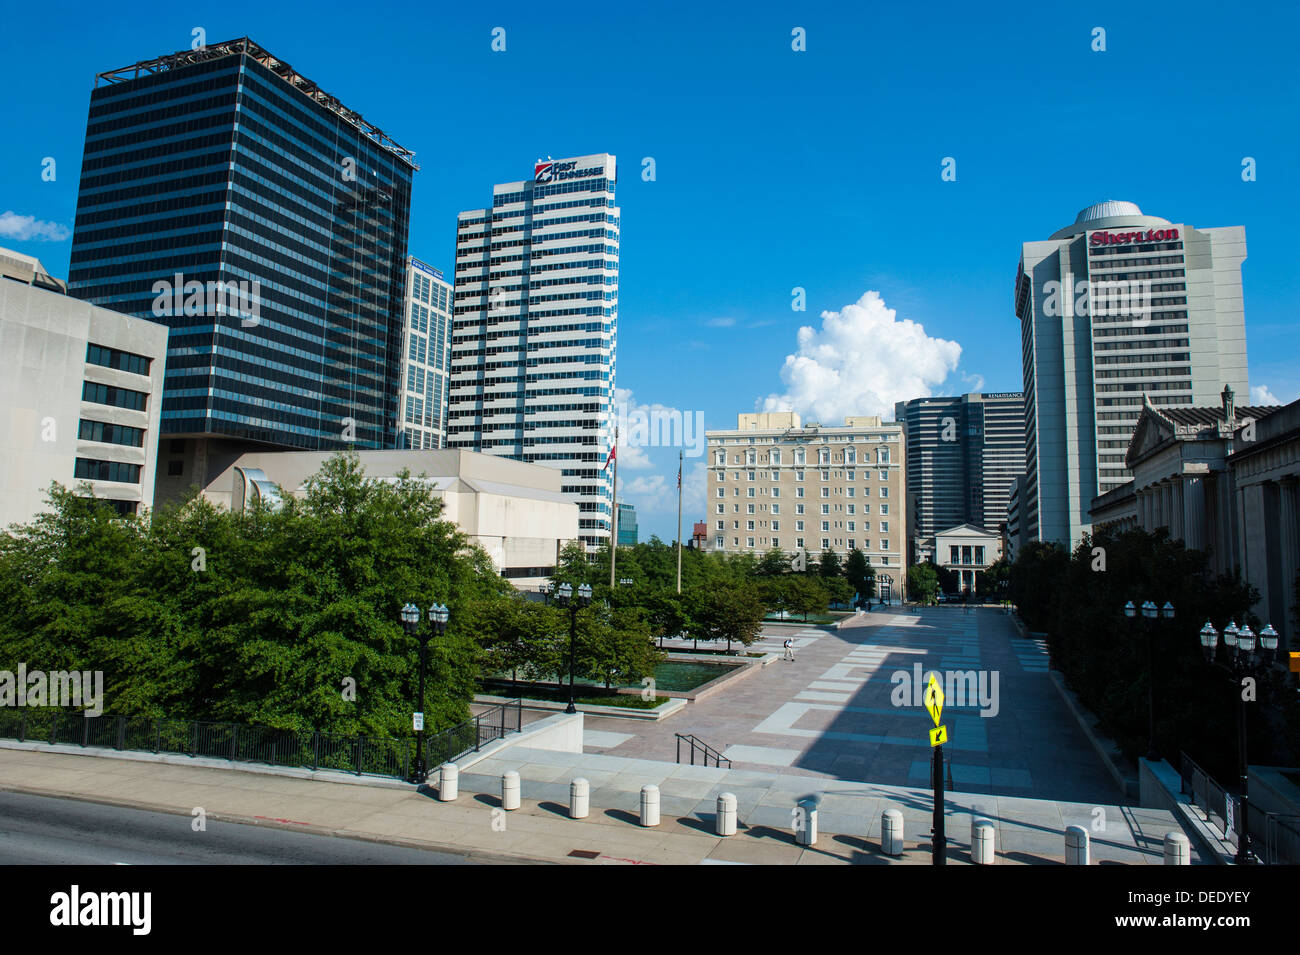 Business district of Nashville, Tennessee, United States of America, North America - Stock Image